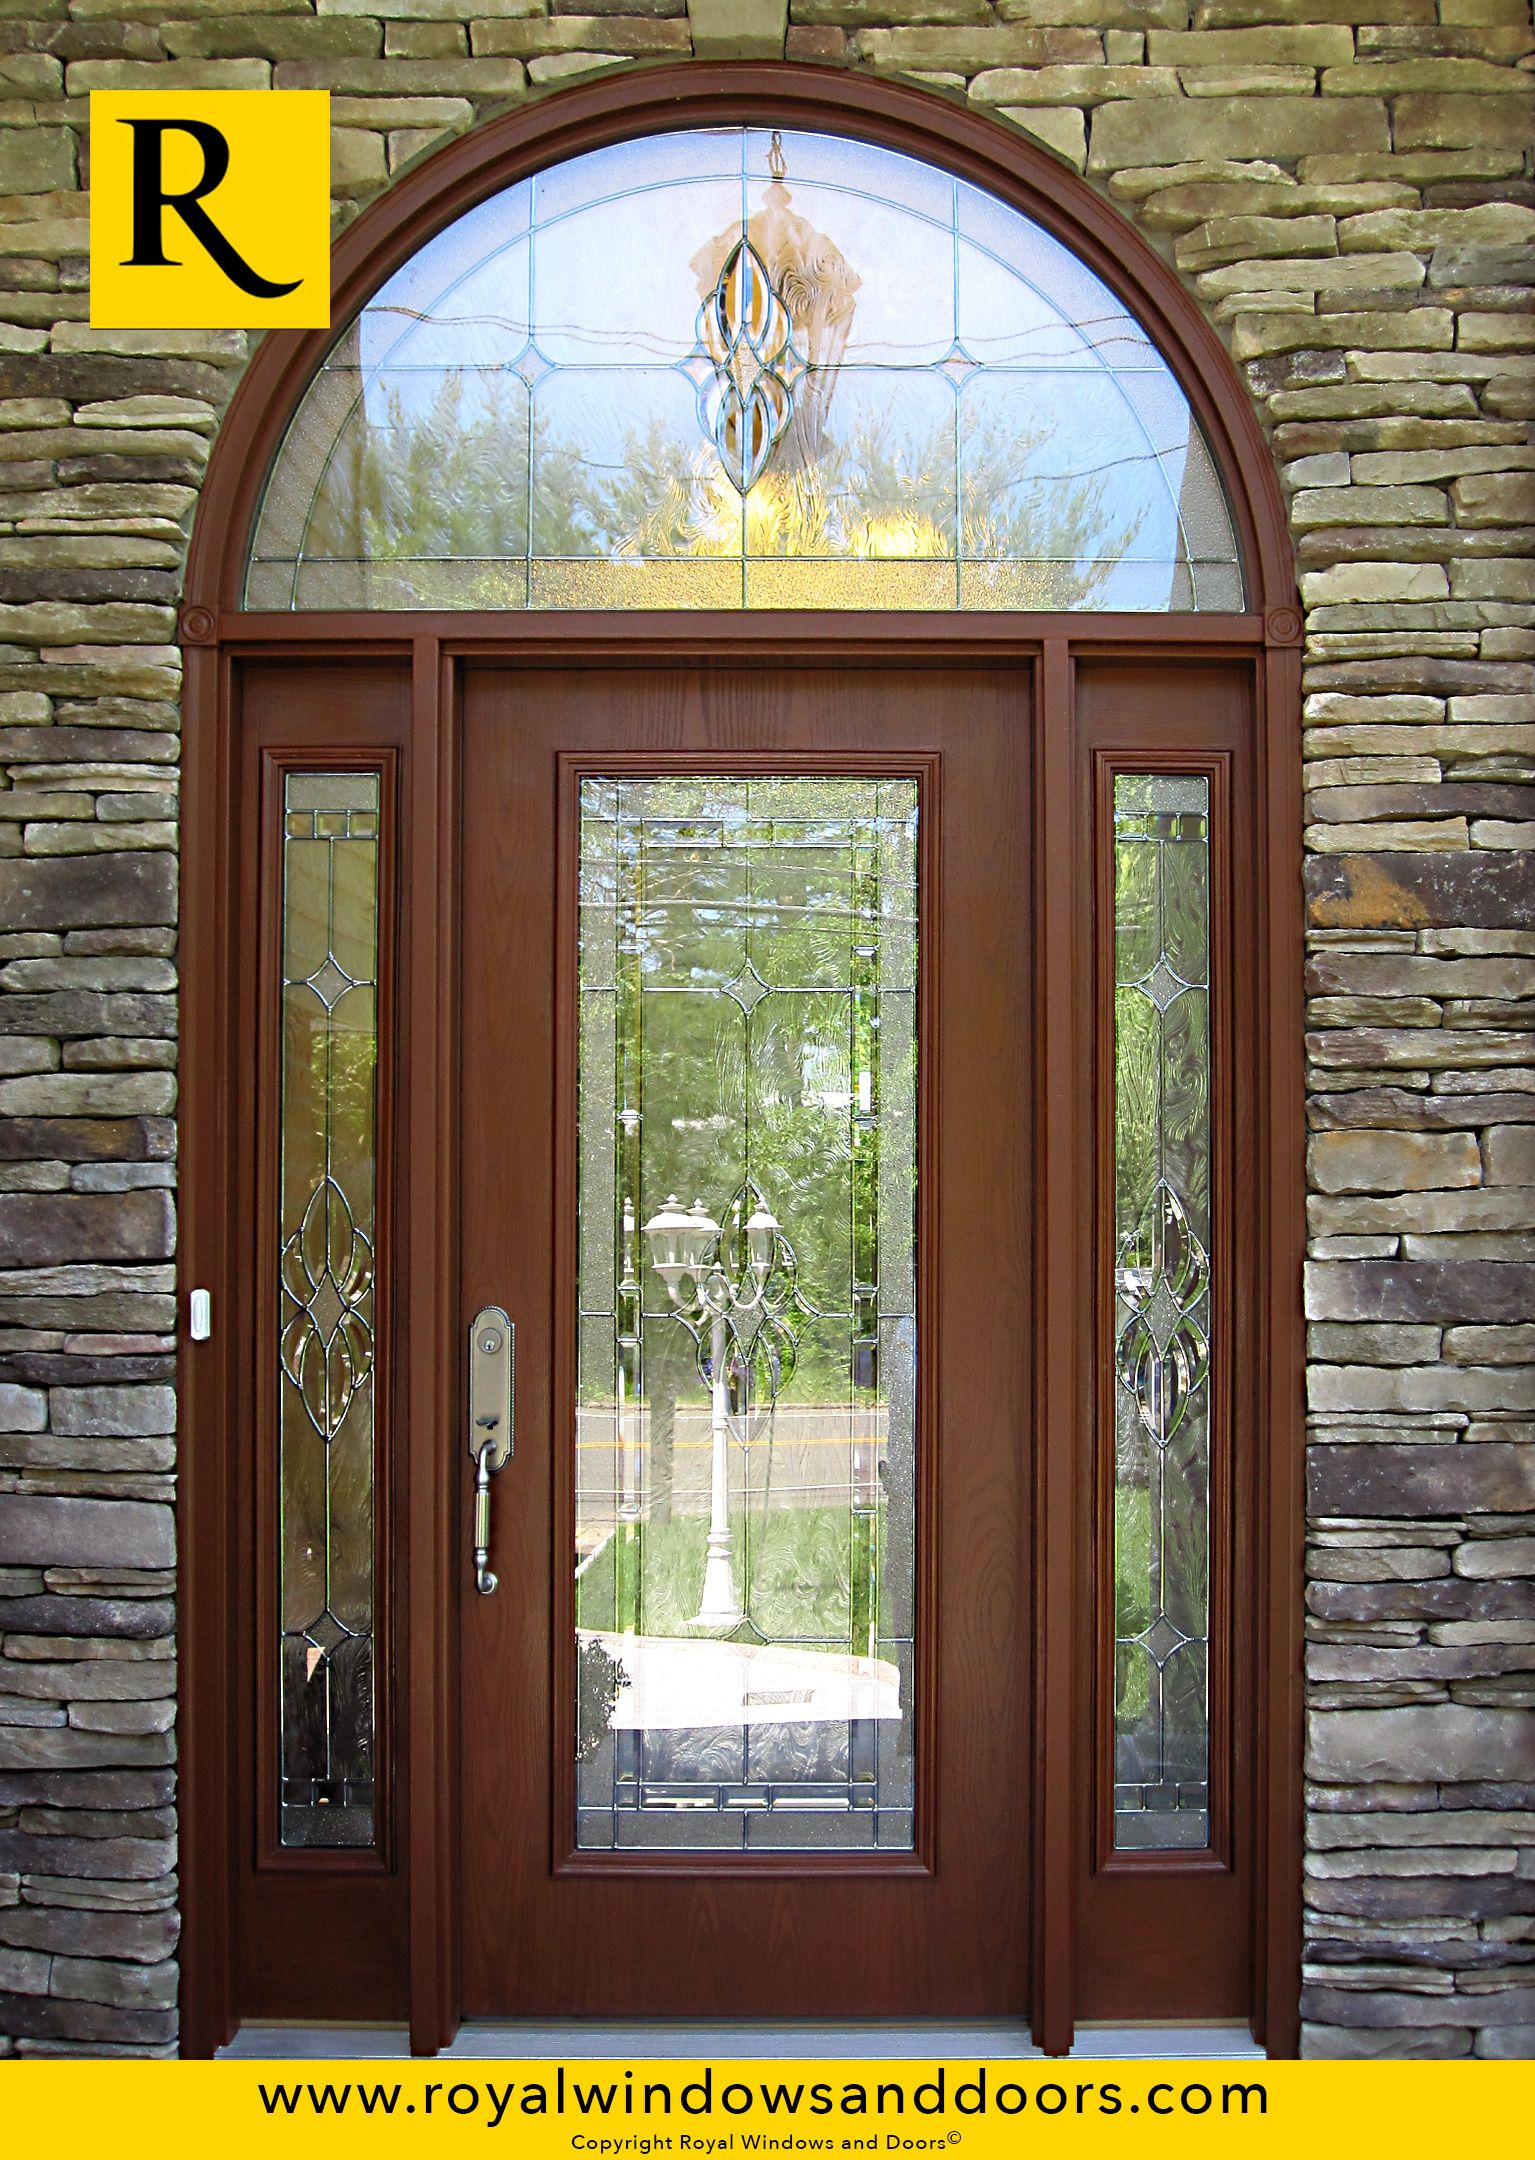 Single Entry Doors single entry door , wood finish, two side lites, transom, designer